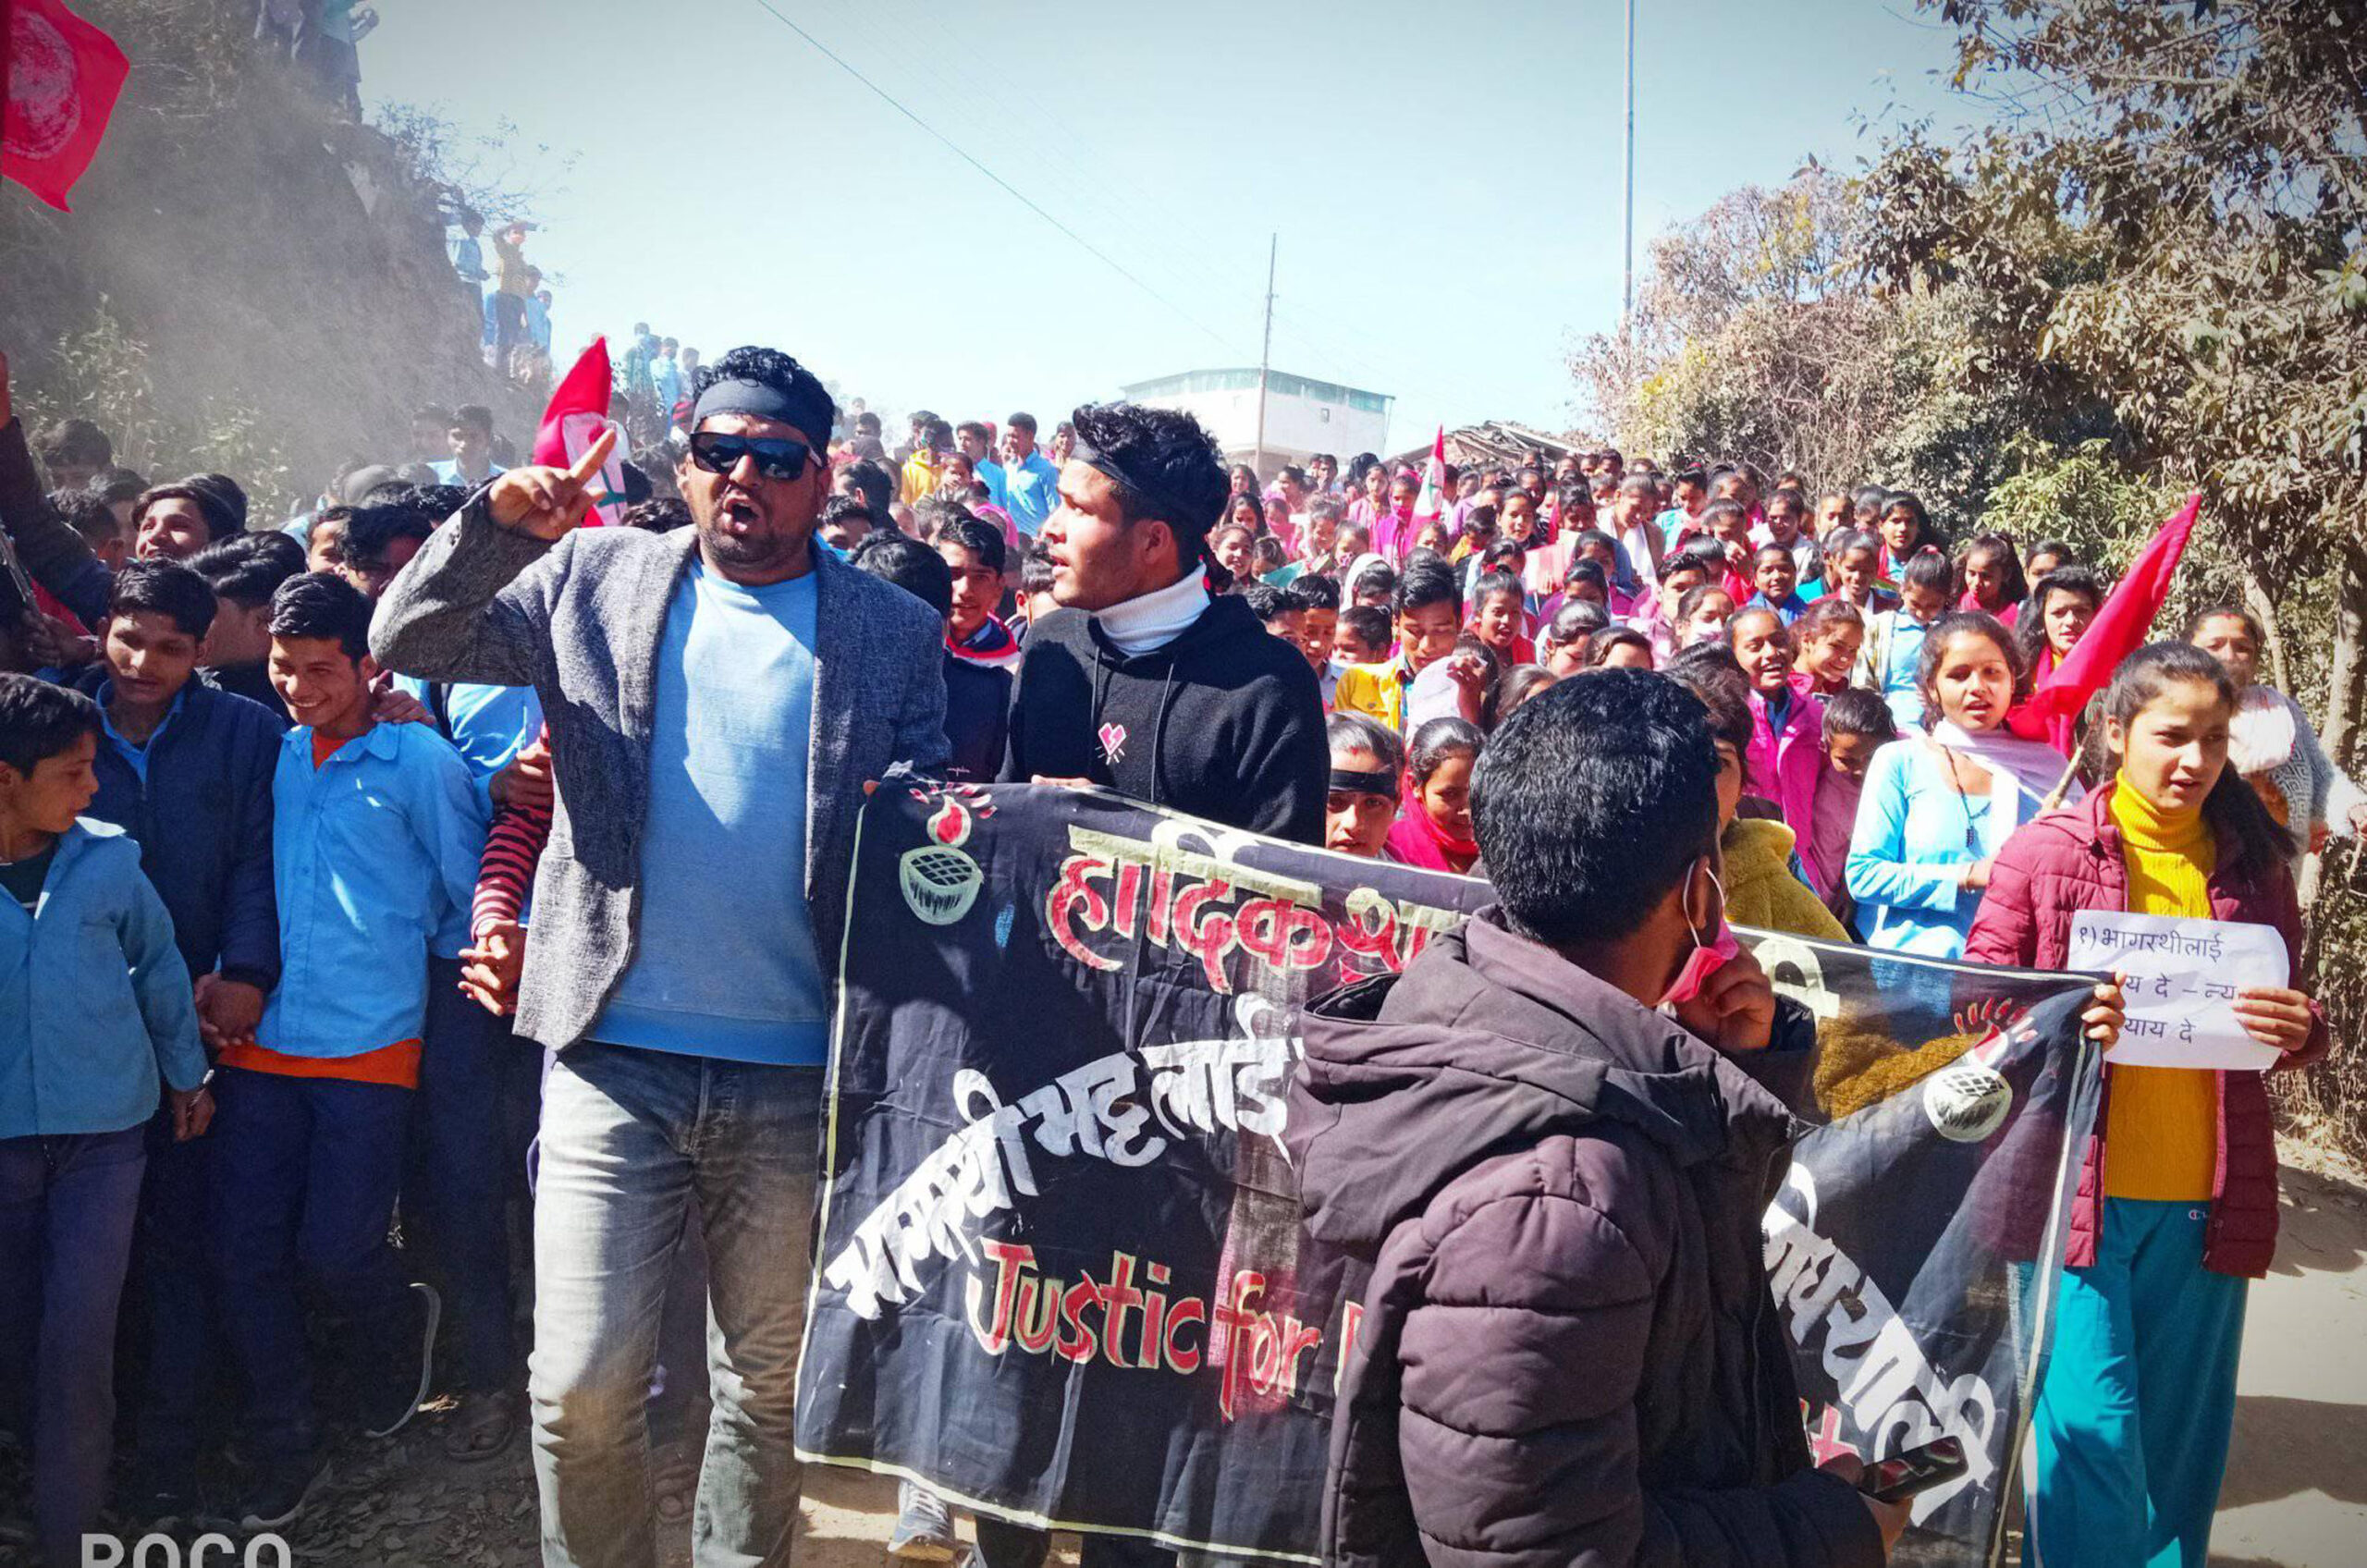 People demonstrate in Baitadi asking for justice for murdered Bhagirathi